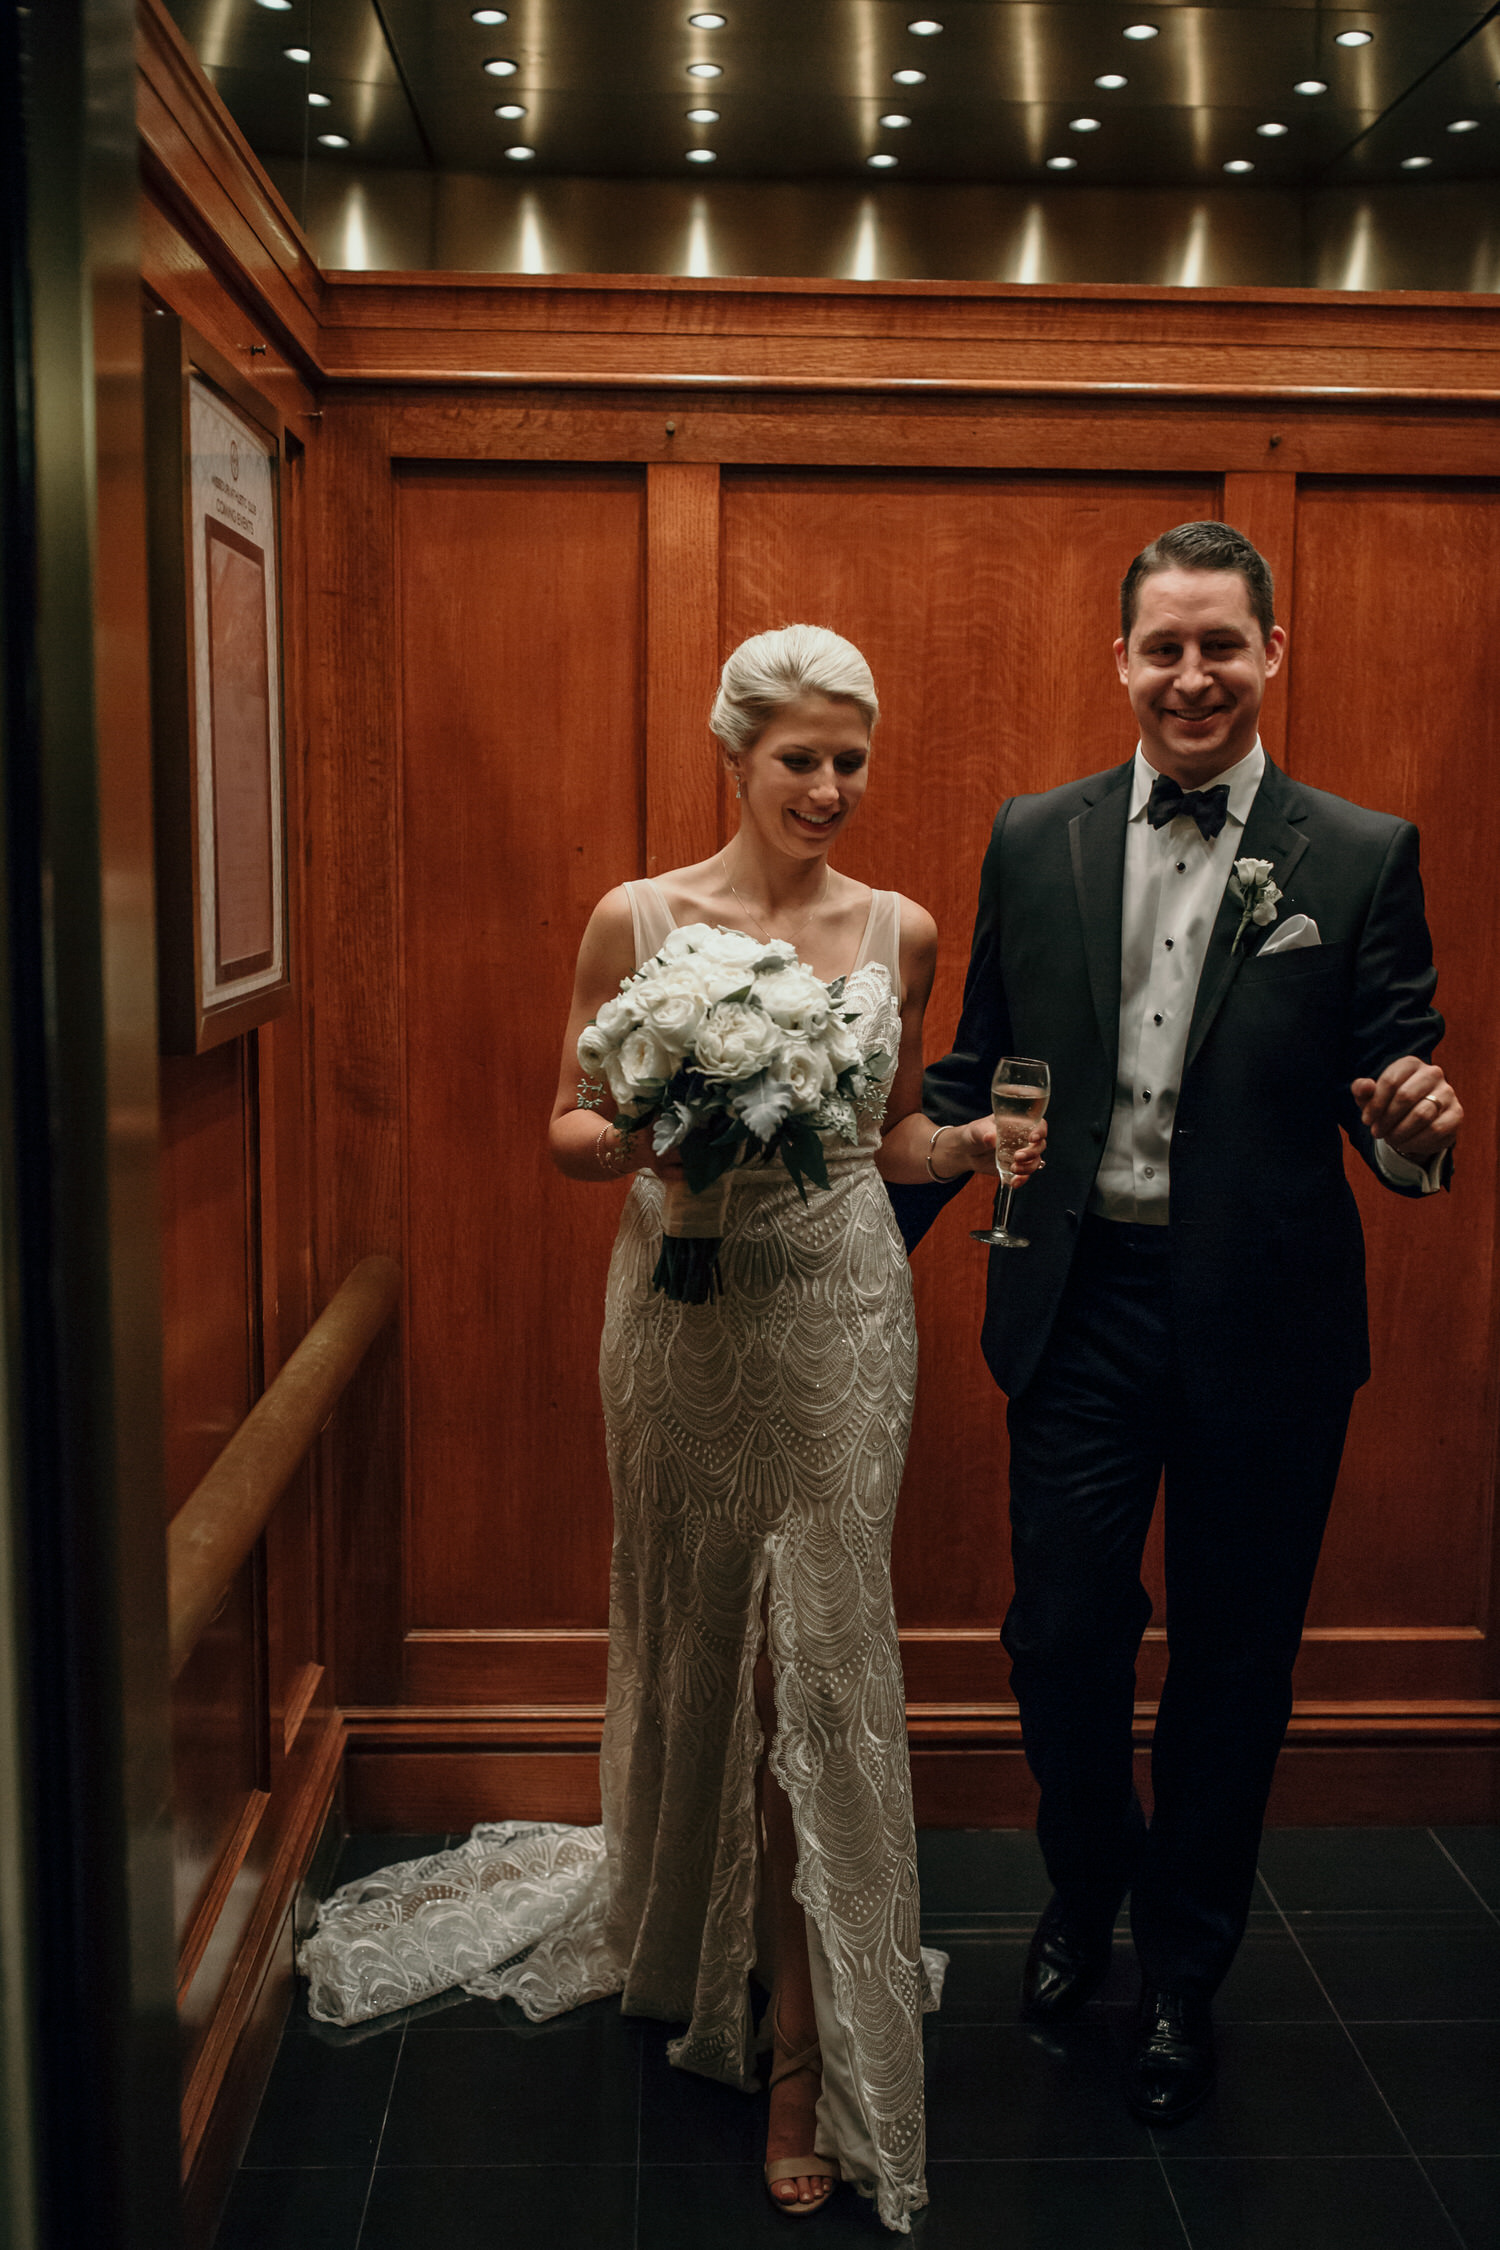 Classic and timeless st louis wedding MAC